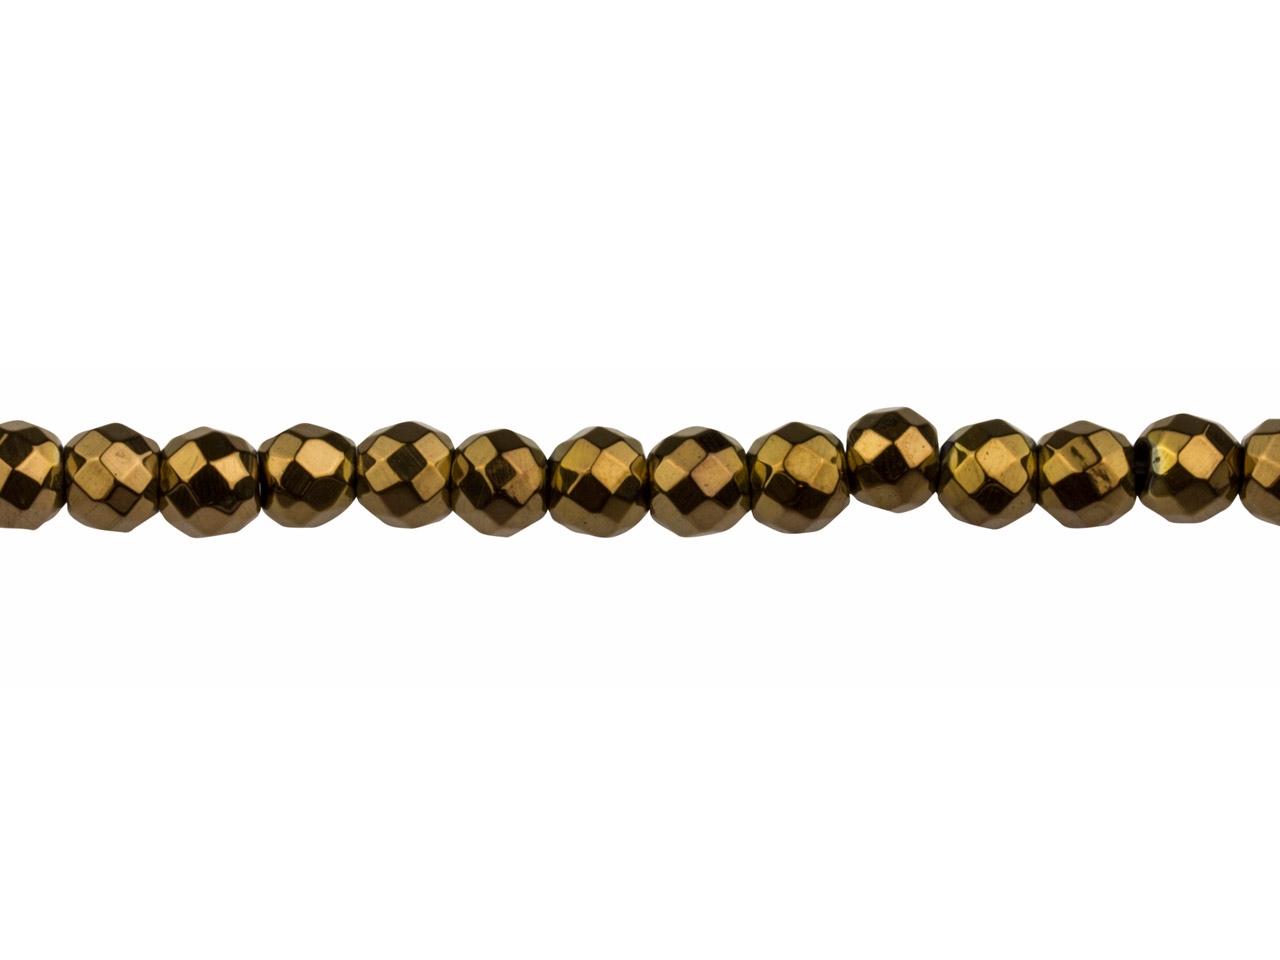 Electroplated Hematite Semi        Precious Faceted Round Beads,      Bronze, 6mm, 16